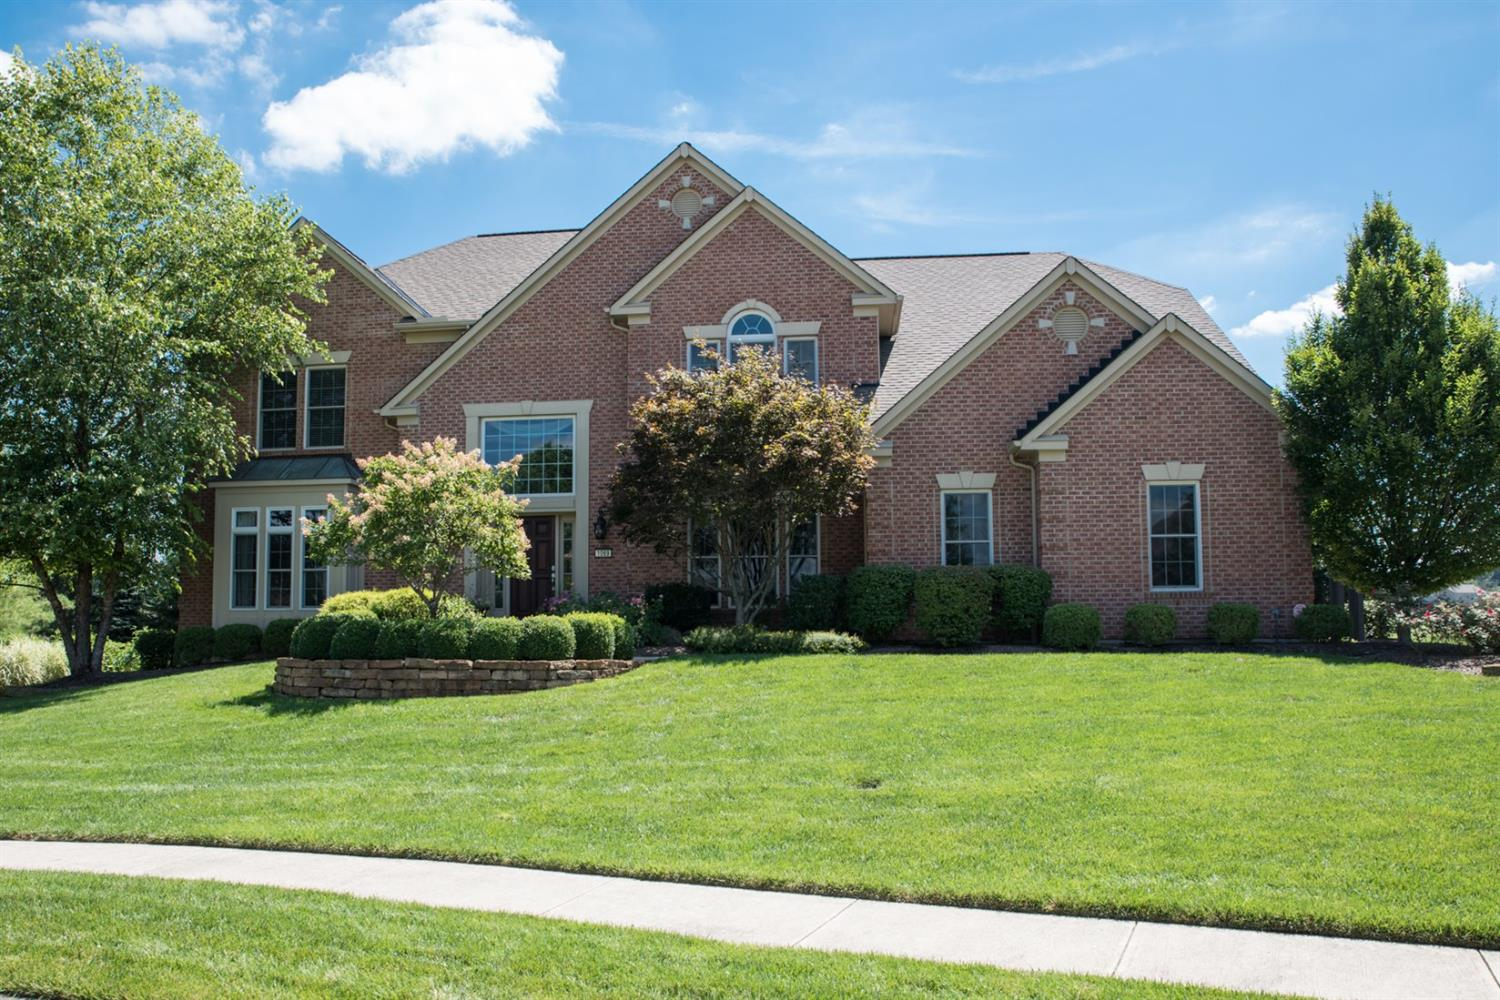 1069 Oasis Pointe Dr Miami Twp. (East), OH